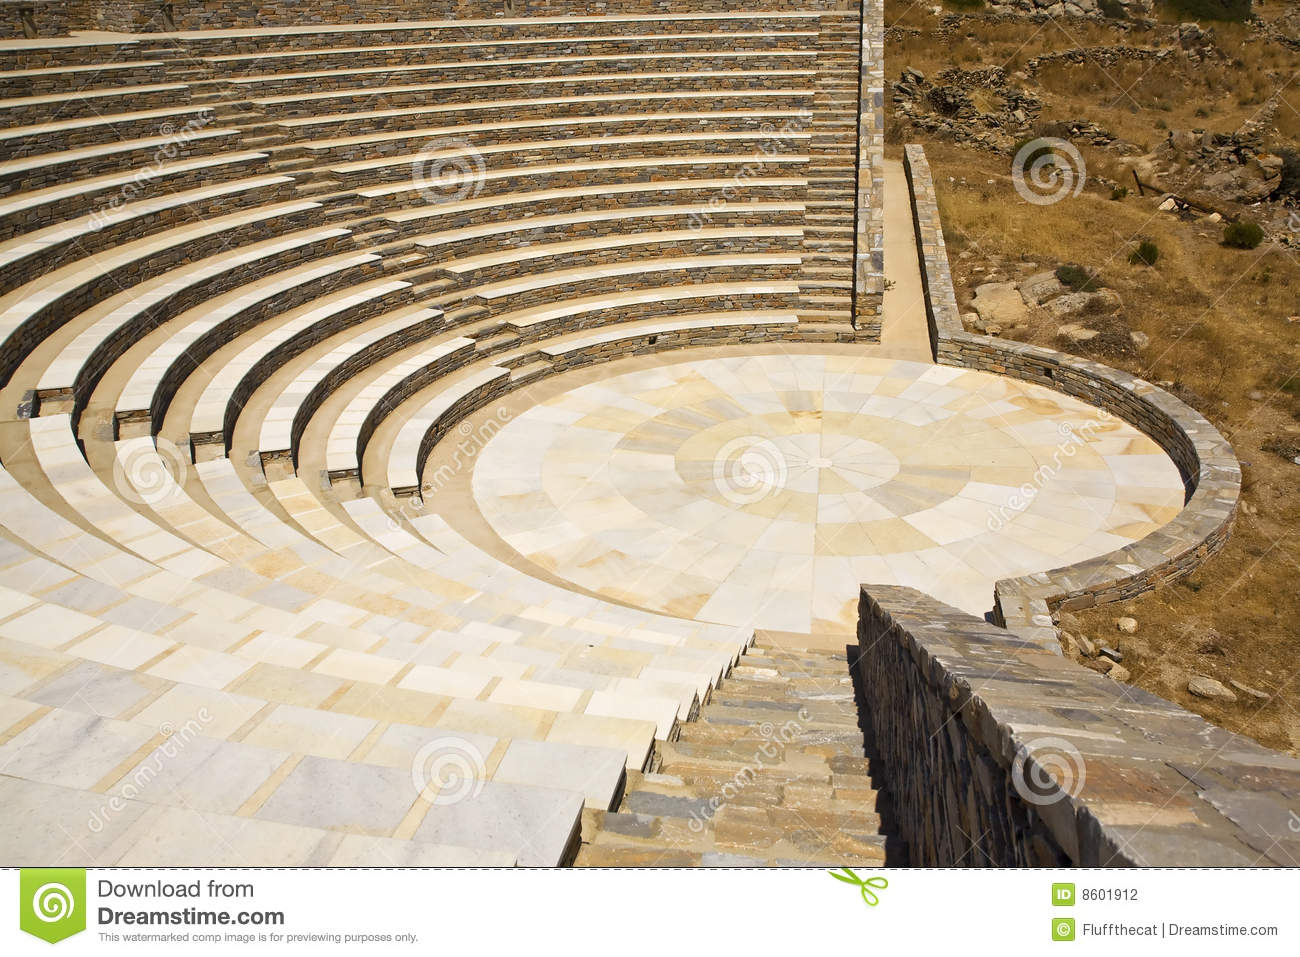 altgriechisches amphitheater griechenland stockfotografie bild 8601912. Black Bedroom Furniture Sets. Home Design Ideas